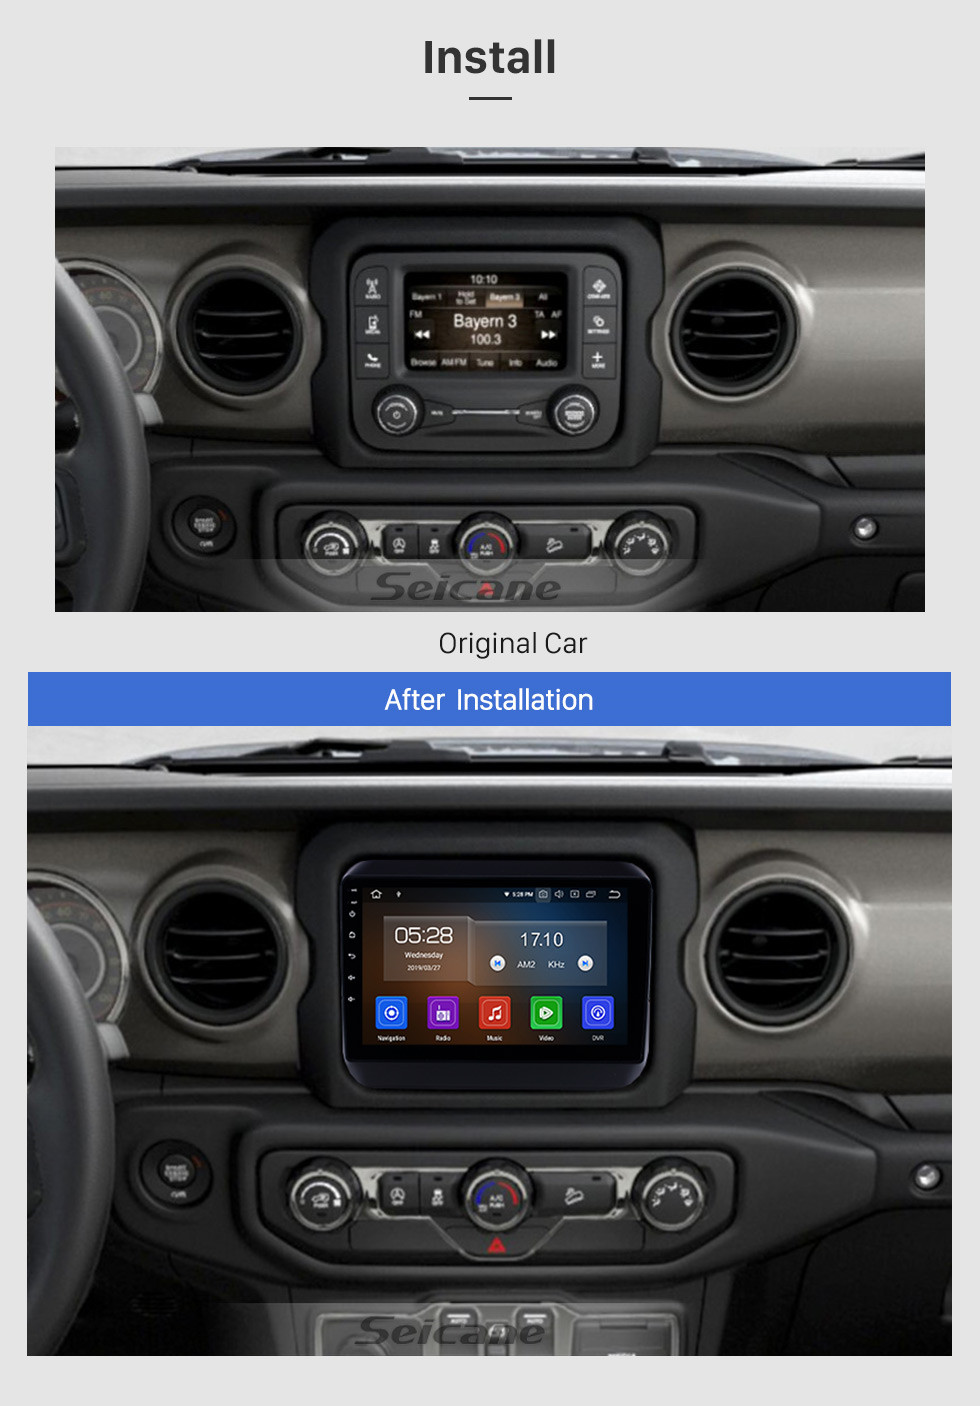 Seicane 2018 Jeep Wrangler Rubicon Android 9.0 GPS Navigation 9 inch 1024*600 Touchscreen Head unit Bluetooth Radio FM RDS music WIFI support 4G Carplay USB Steering Wheel Control